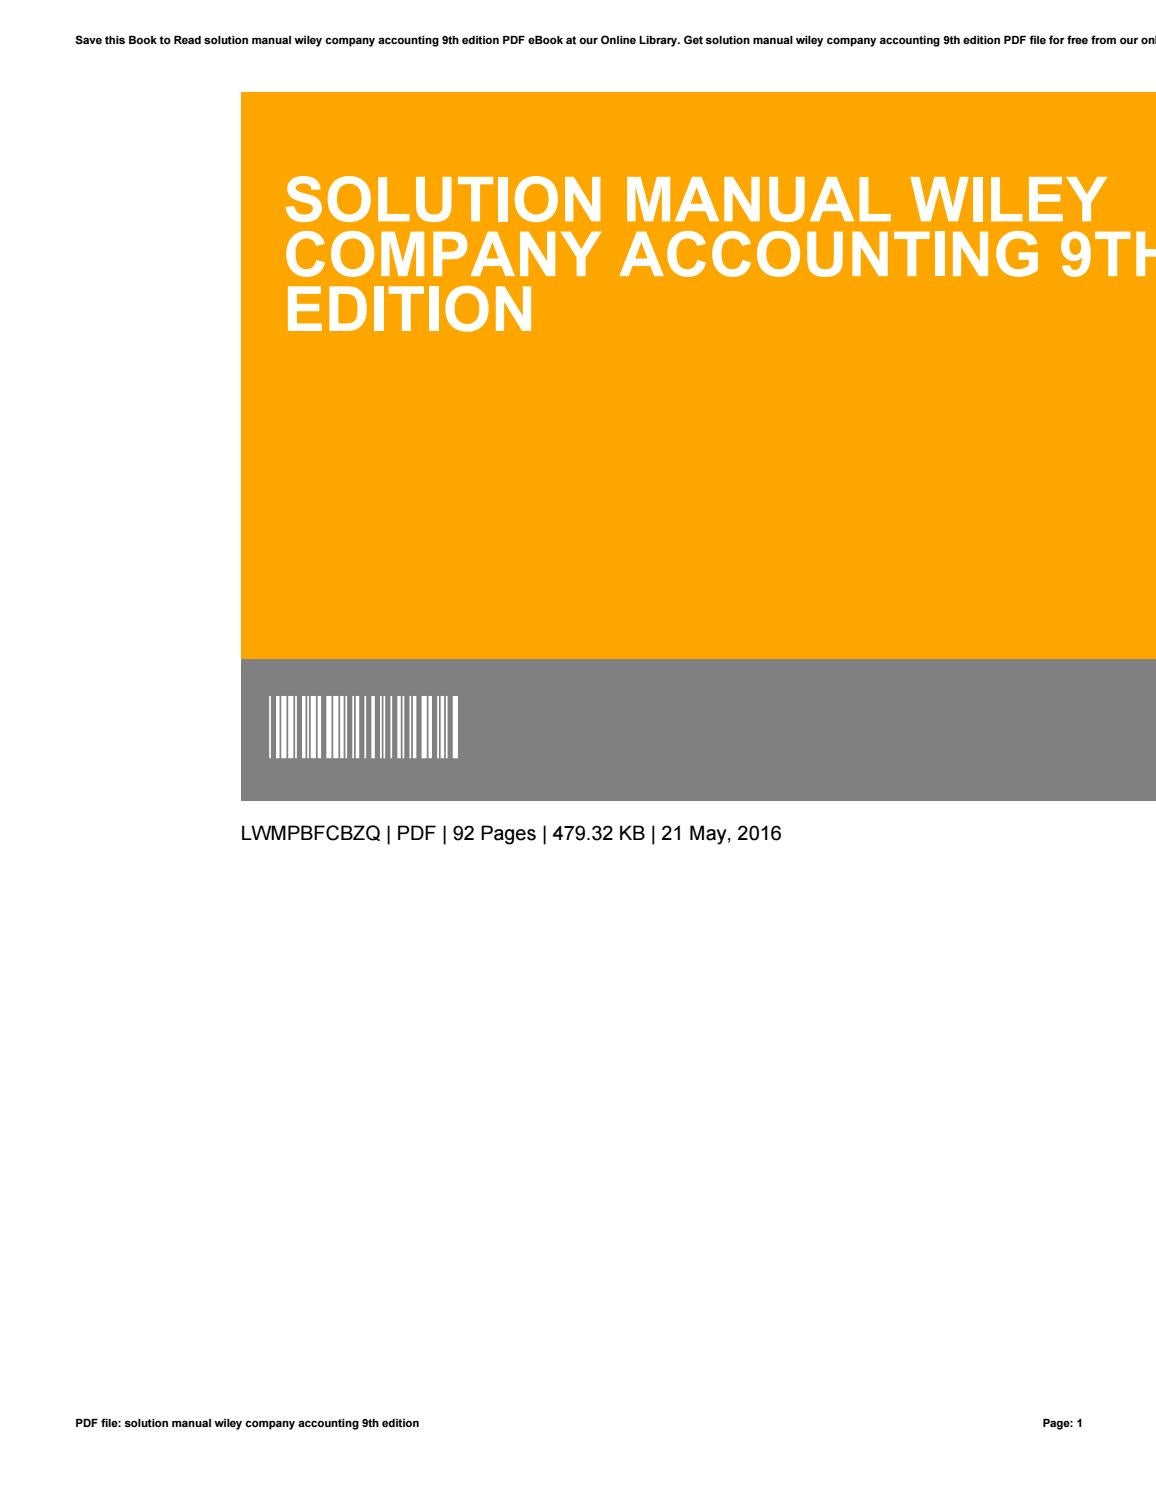 Solution manual wiley company accounting 9th edition by JoanRuff2738 - issuu